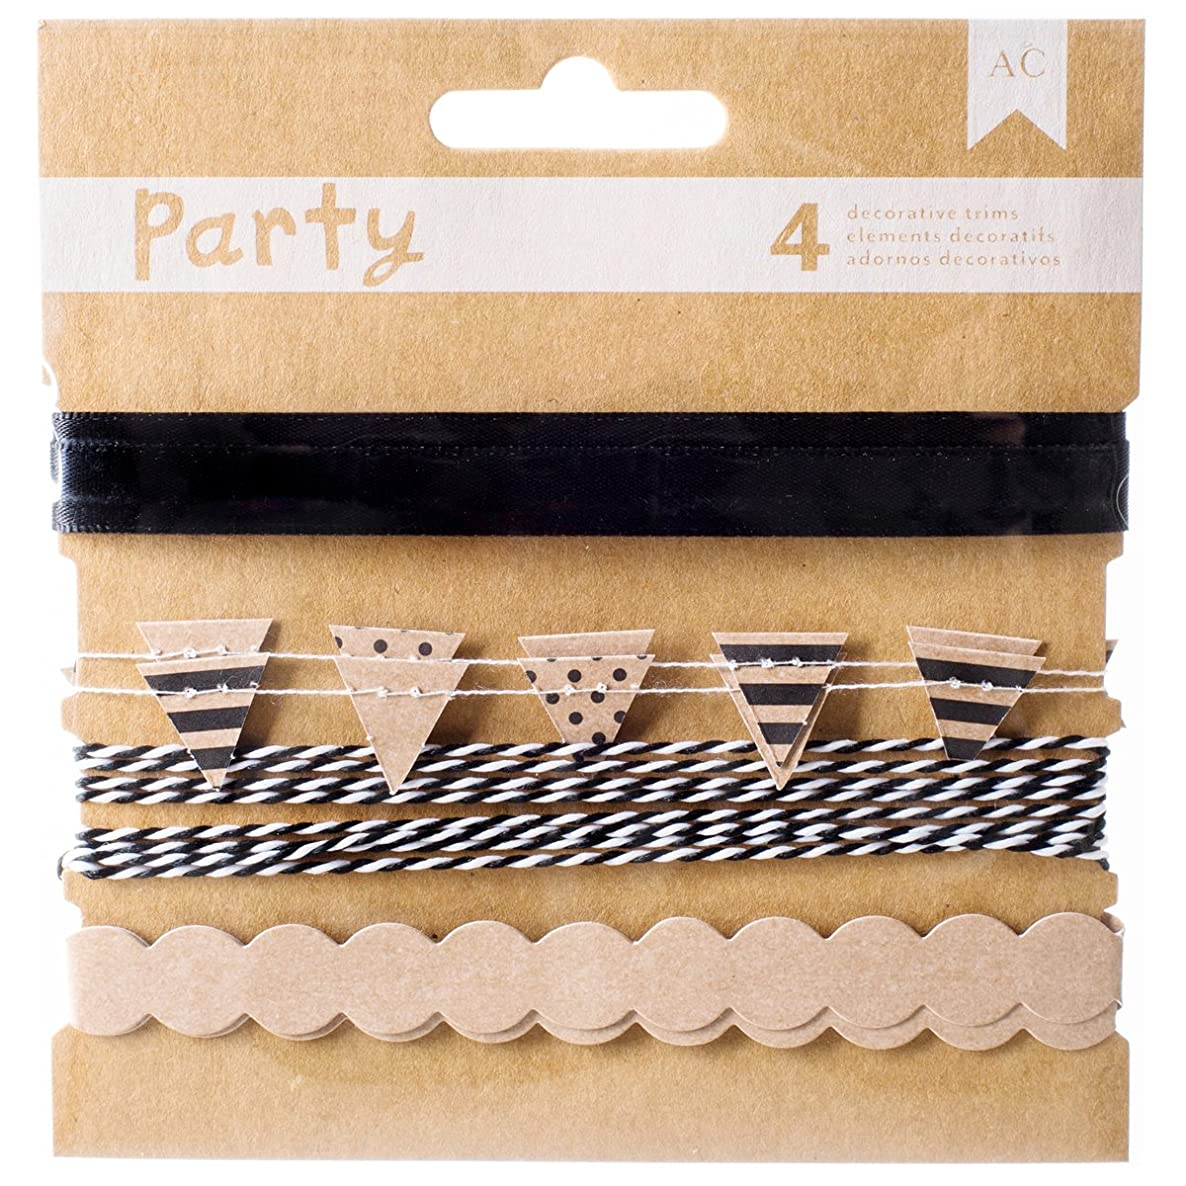 American Crafts DIY Party Decorative Trims (4 Pack), Black and Kraft